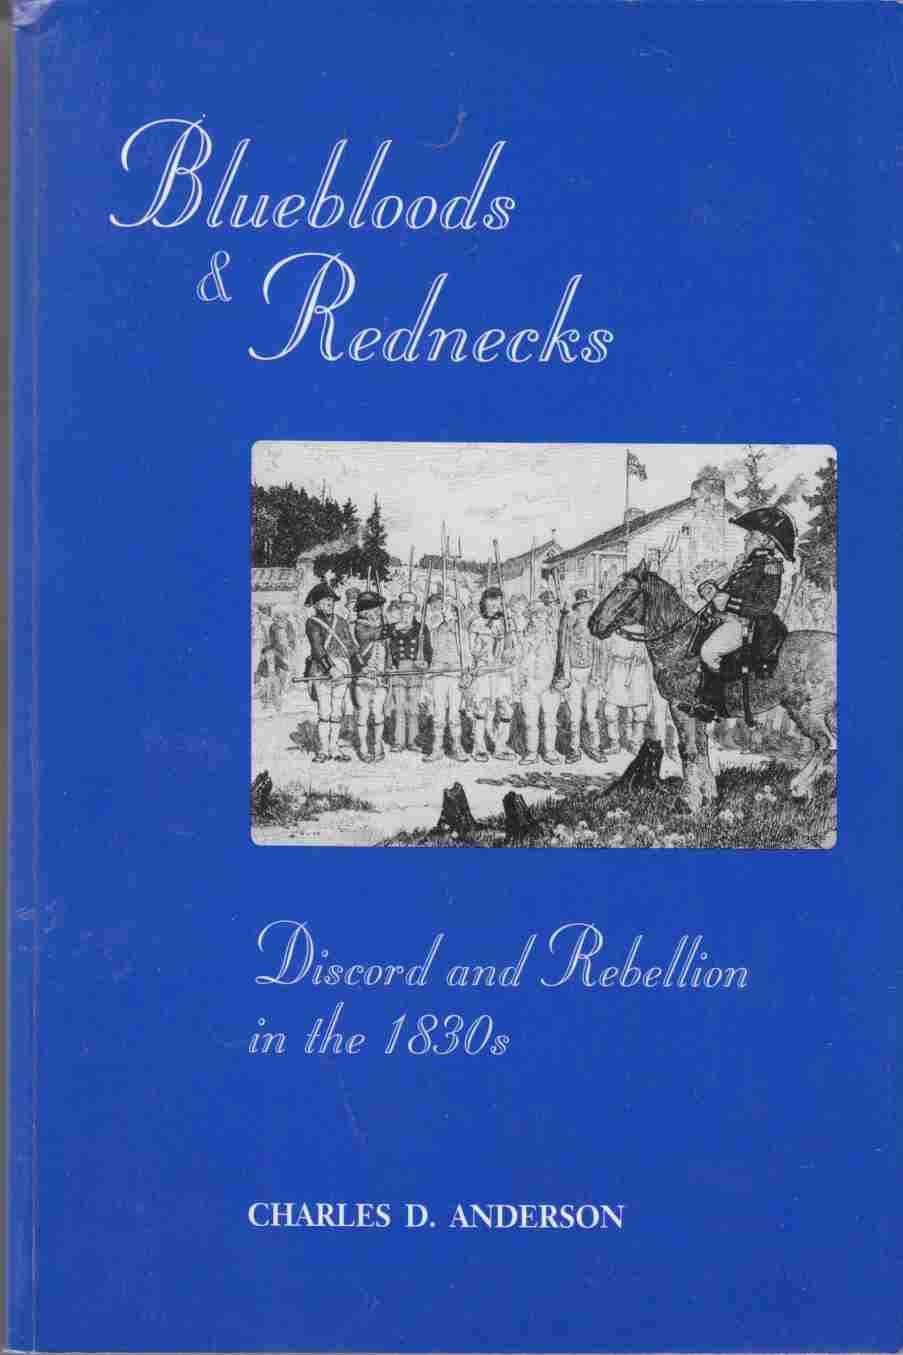 Image for Bluebloods and Rednecks:  Discord and Rebellion in the 1830's